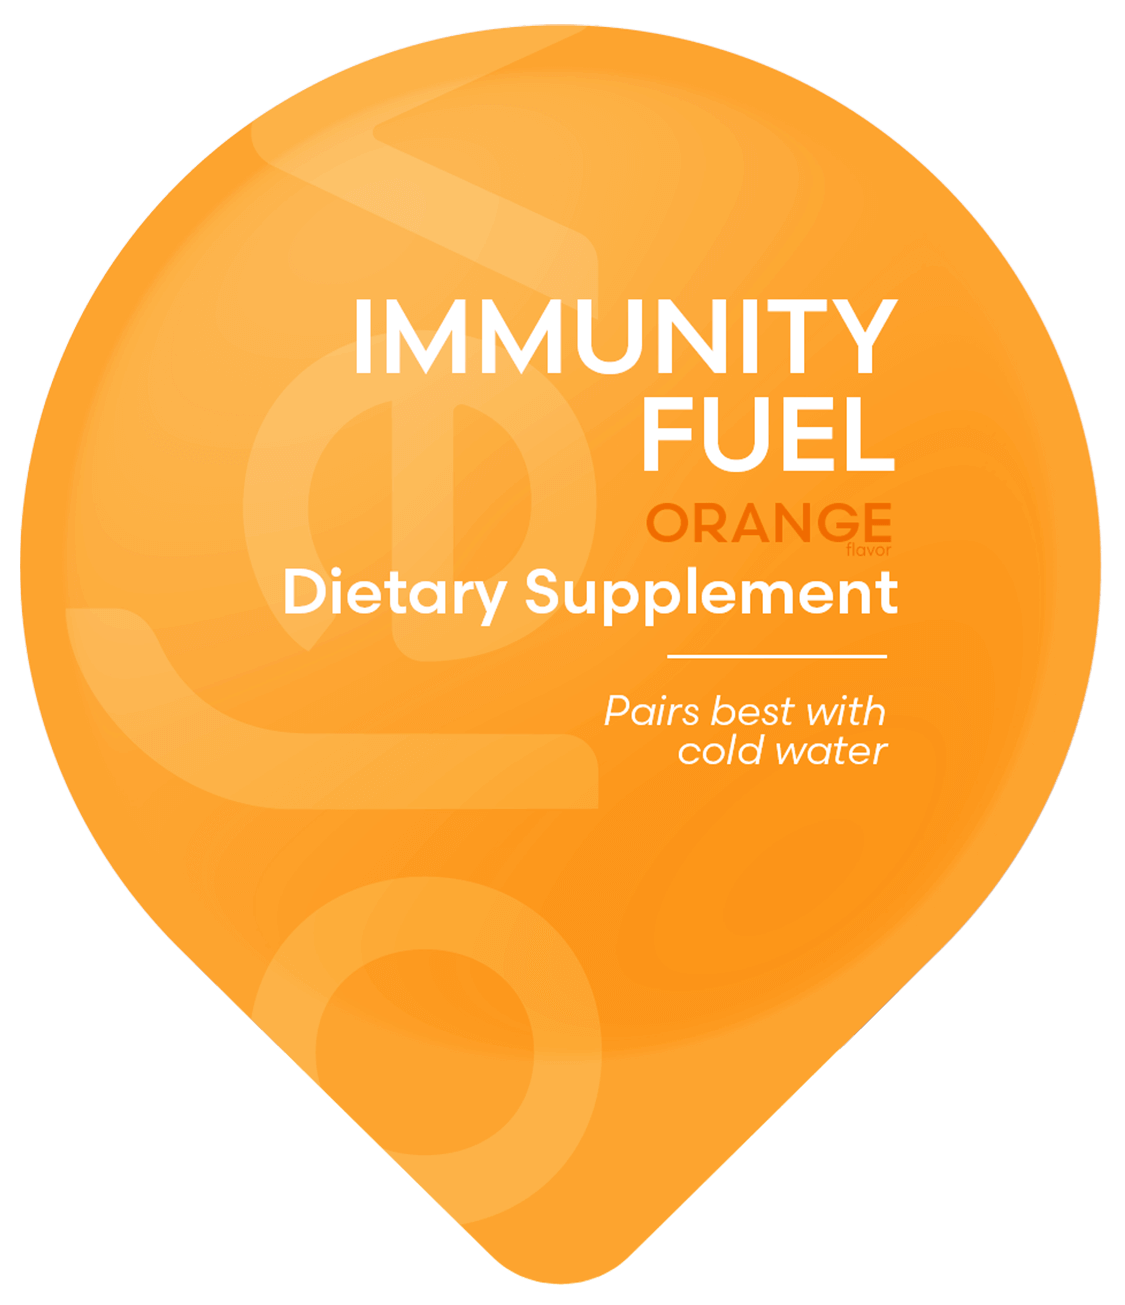 3. Immune support from nature